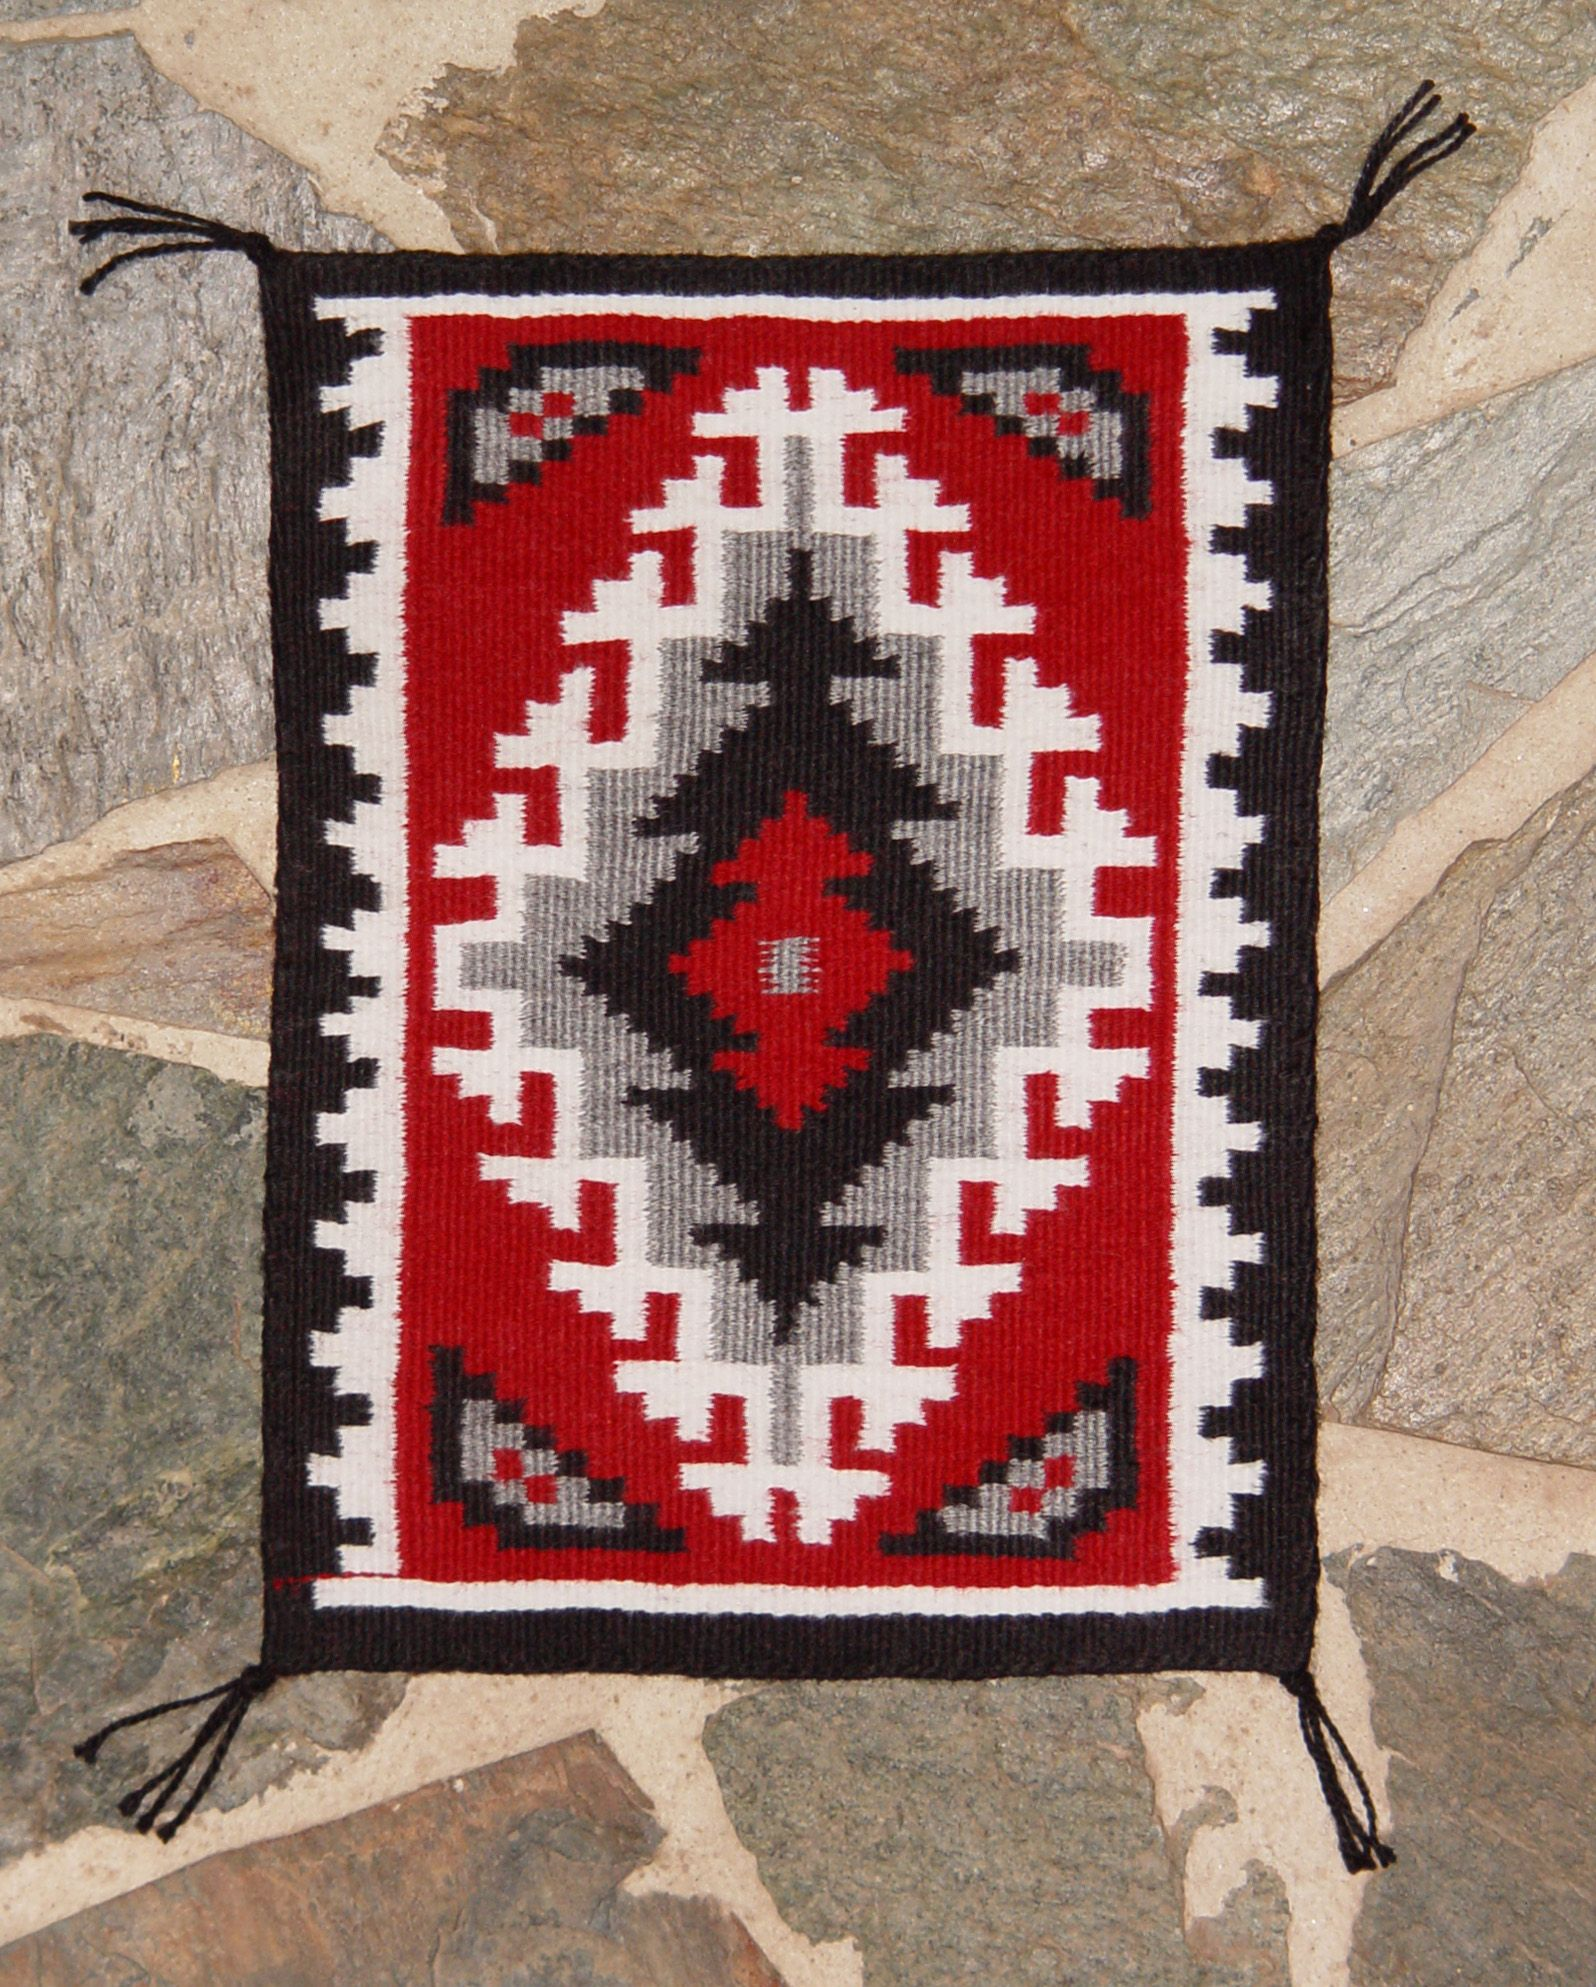 navajo rug patterns. Navajo Rugs Features Churro Collection, Contemporary Rugs, Historics Small And Large Size Only On Online Shop. Rug Patterns